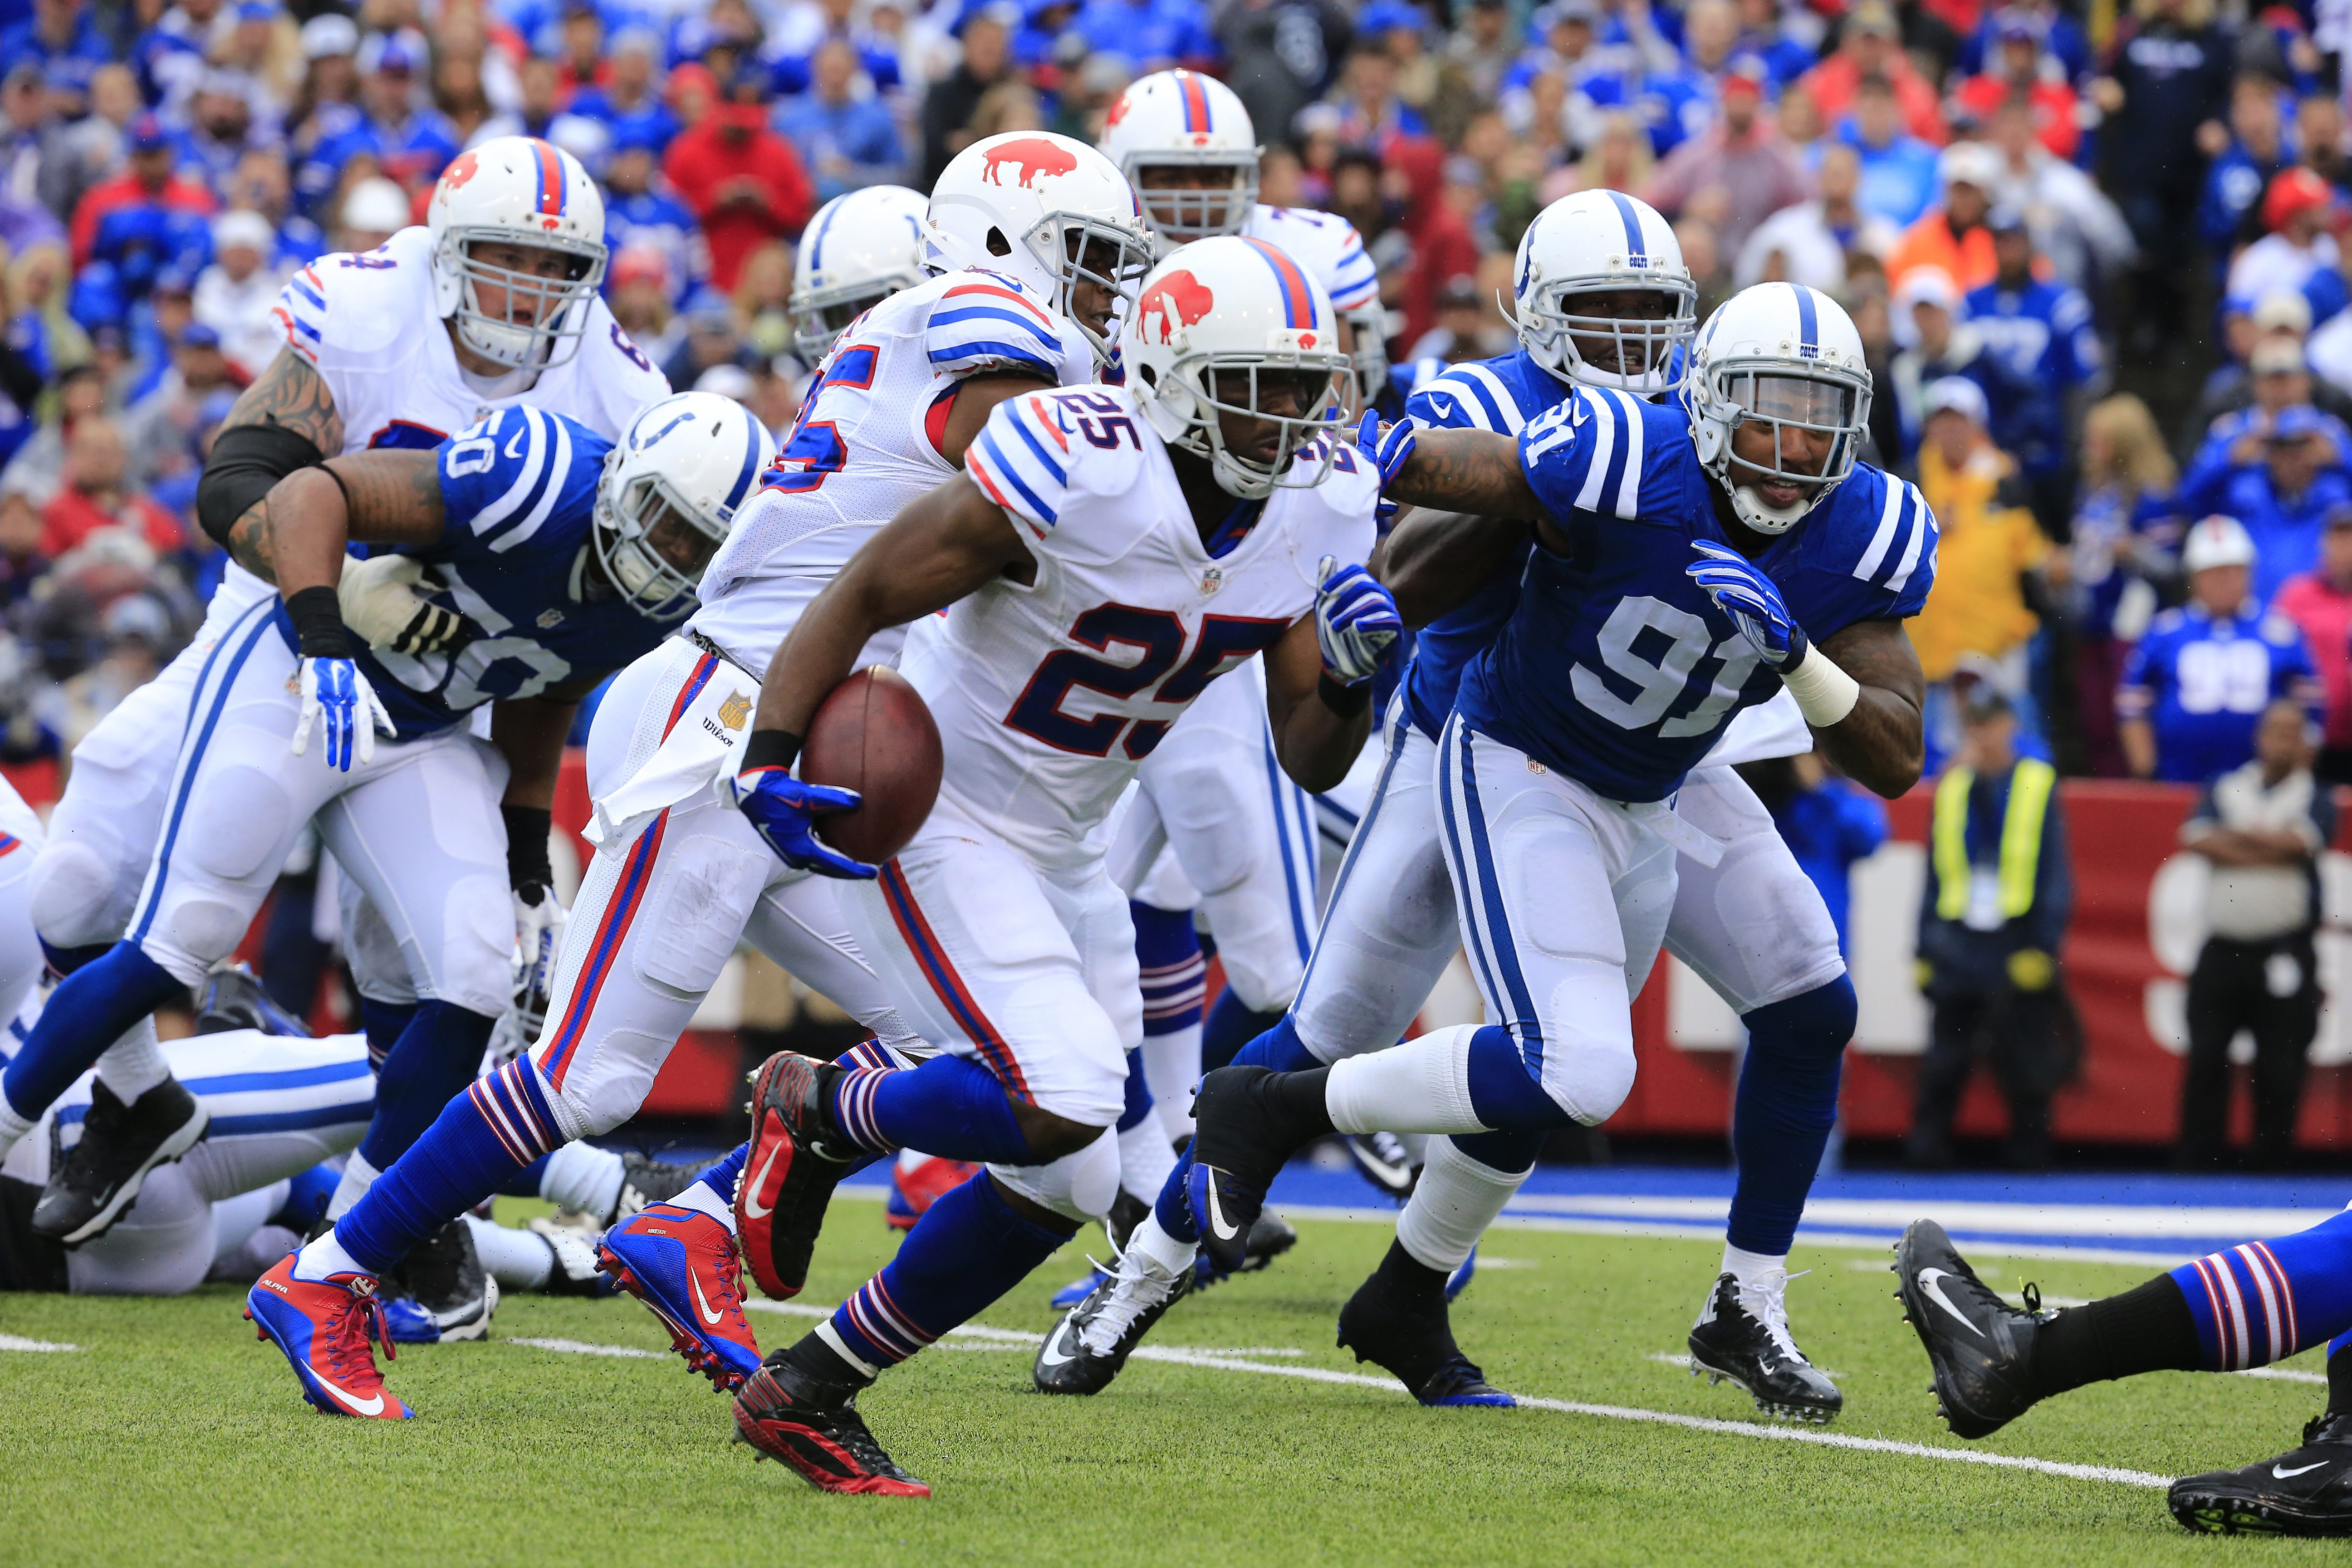 The Bills are 5-0 in games this season in which running back LeSean McCoy has carried the ball at least 20 times. (Harry Scull Jr./Buffalo News file photo)